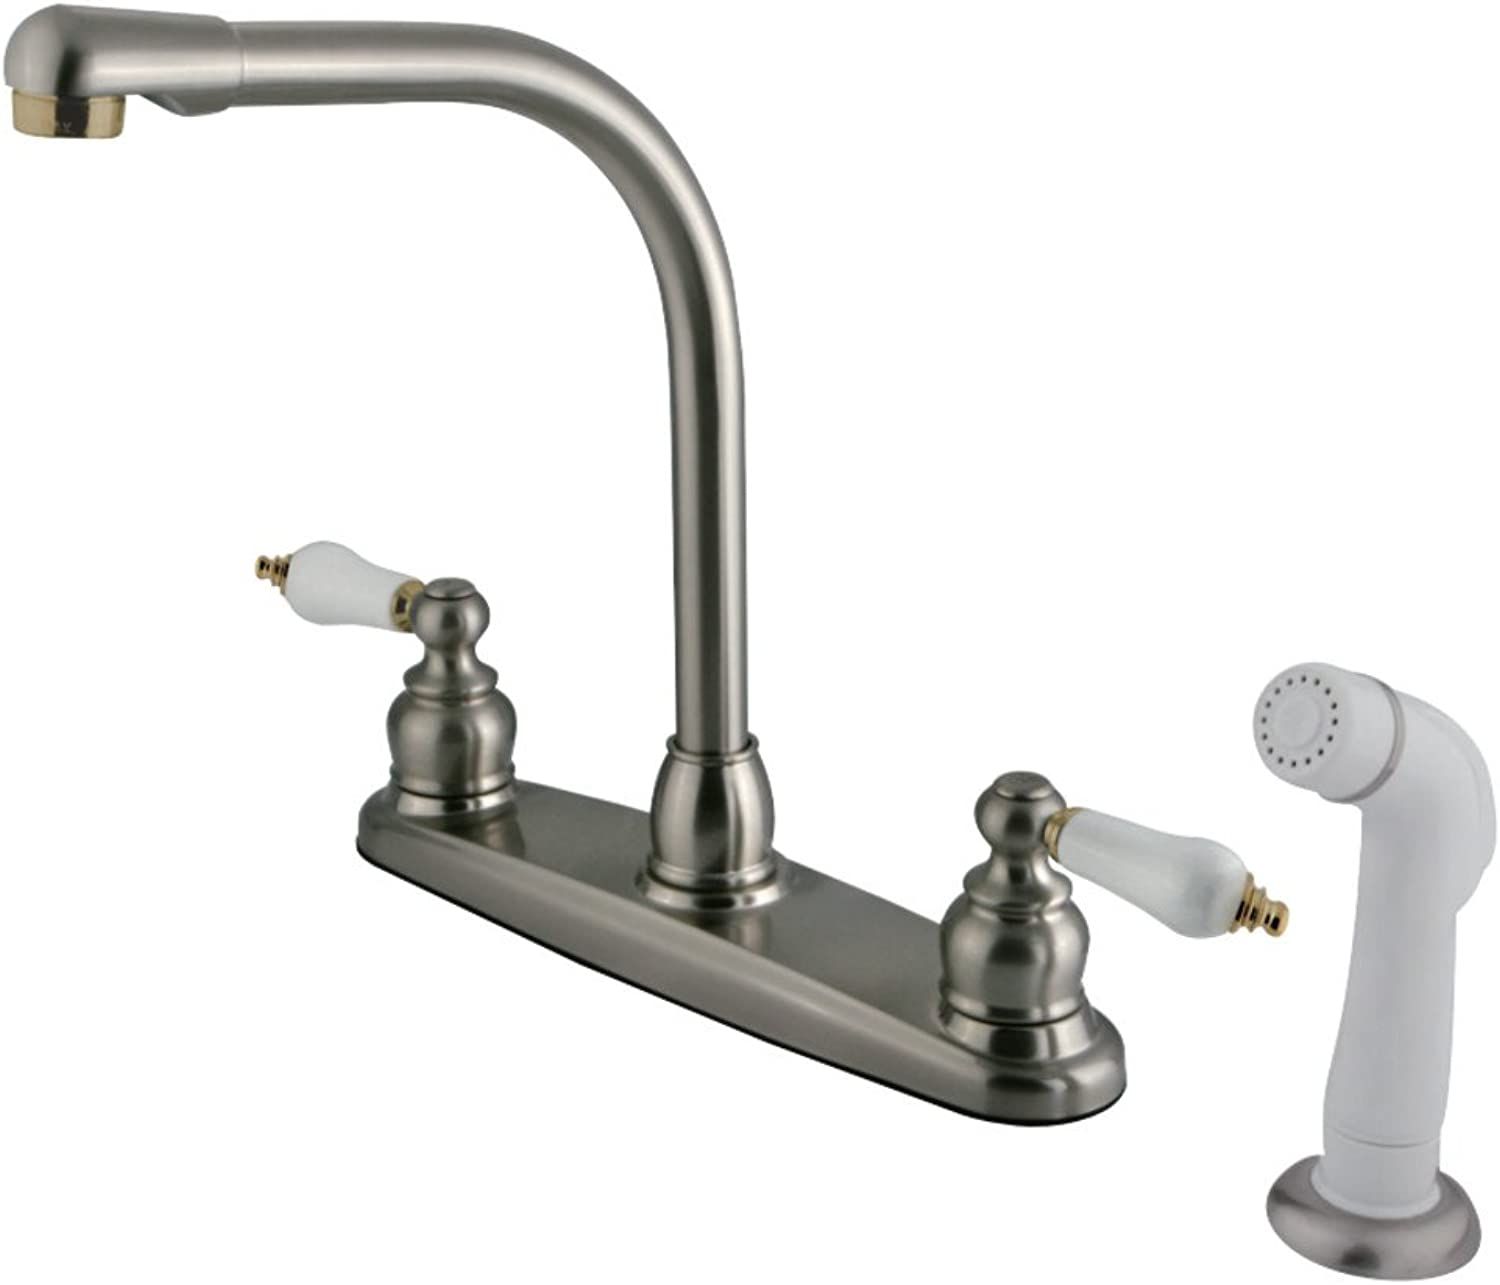 Kingston Brass KB719 Victorian High Arc Kitchen Faucet, Satin Nickel and Polished Brass by Kingston Brass